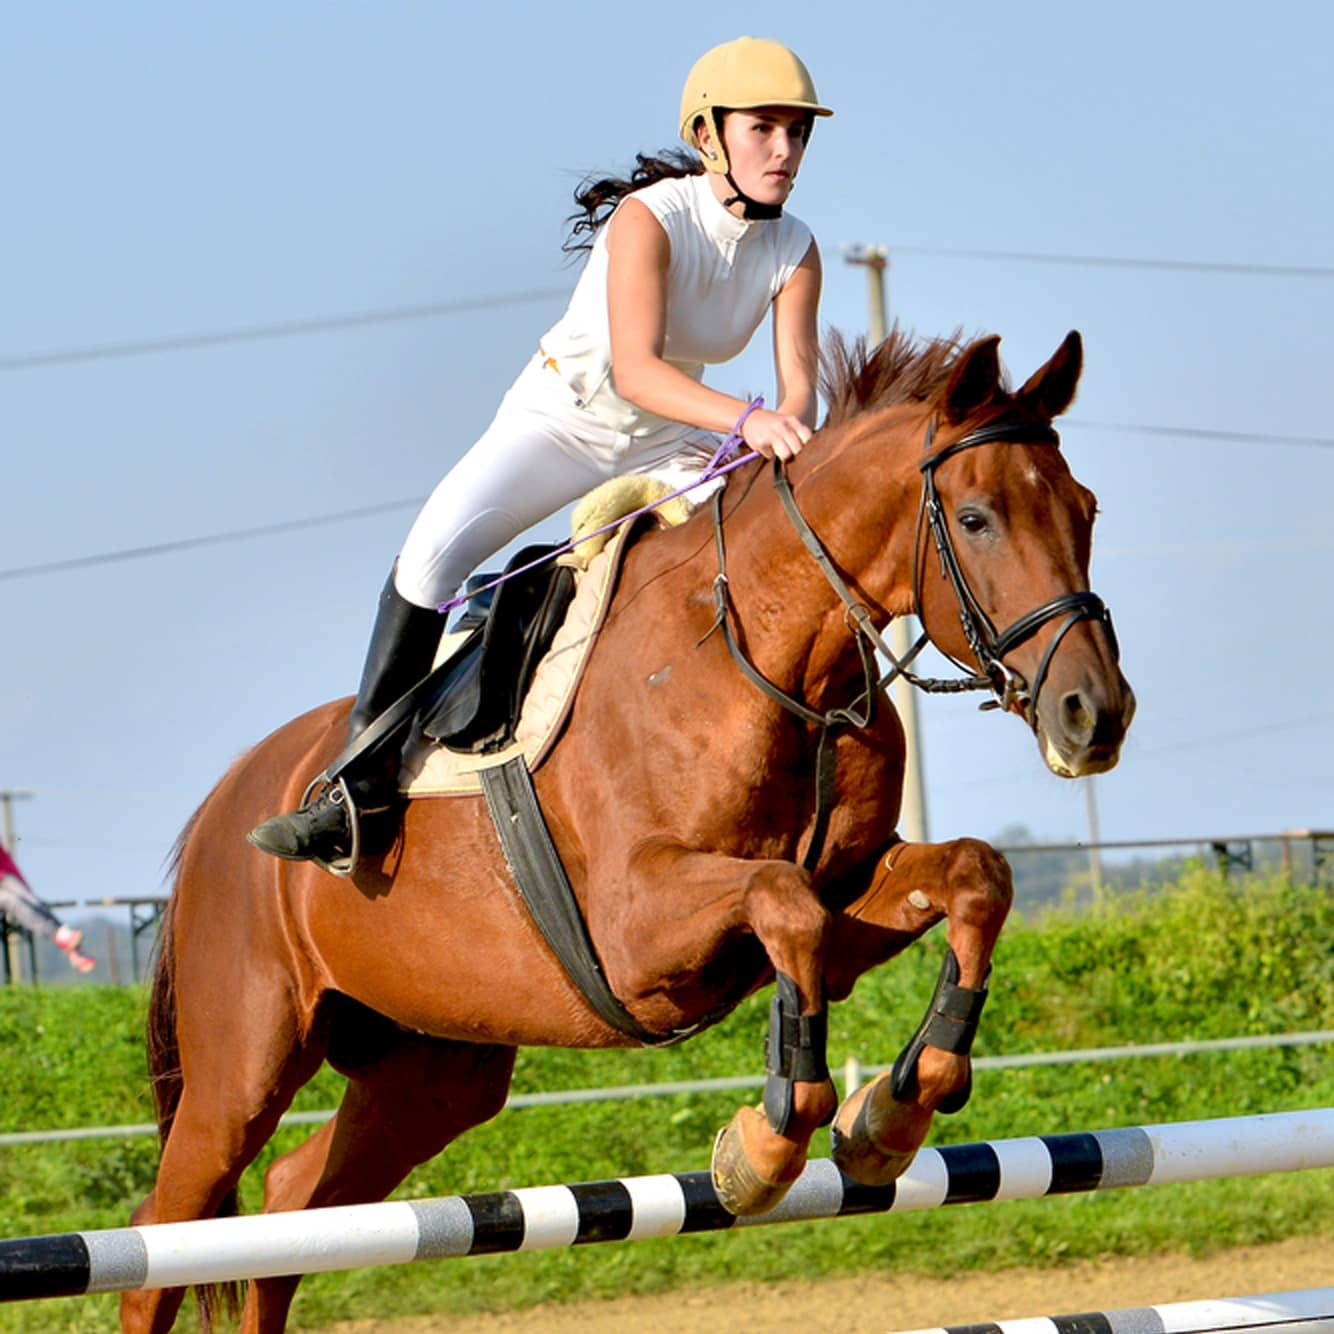 Horseback riding with scoliosis